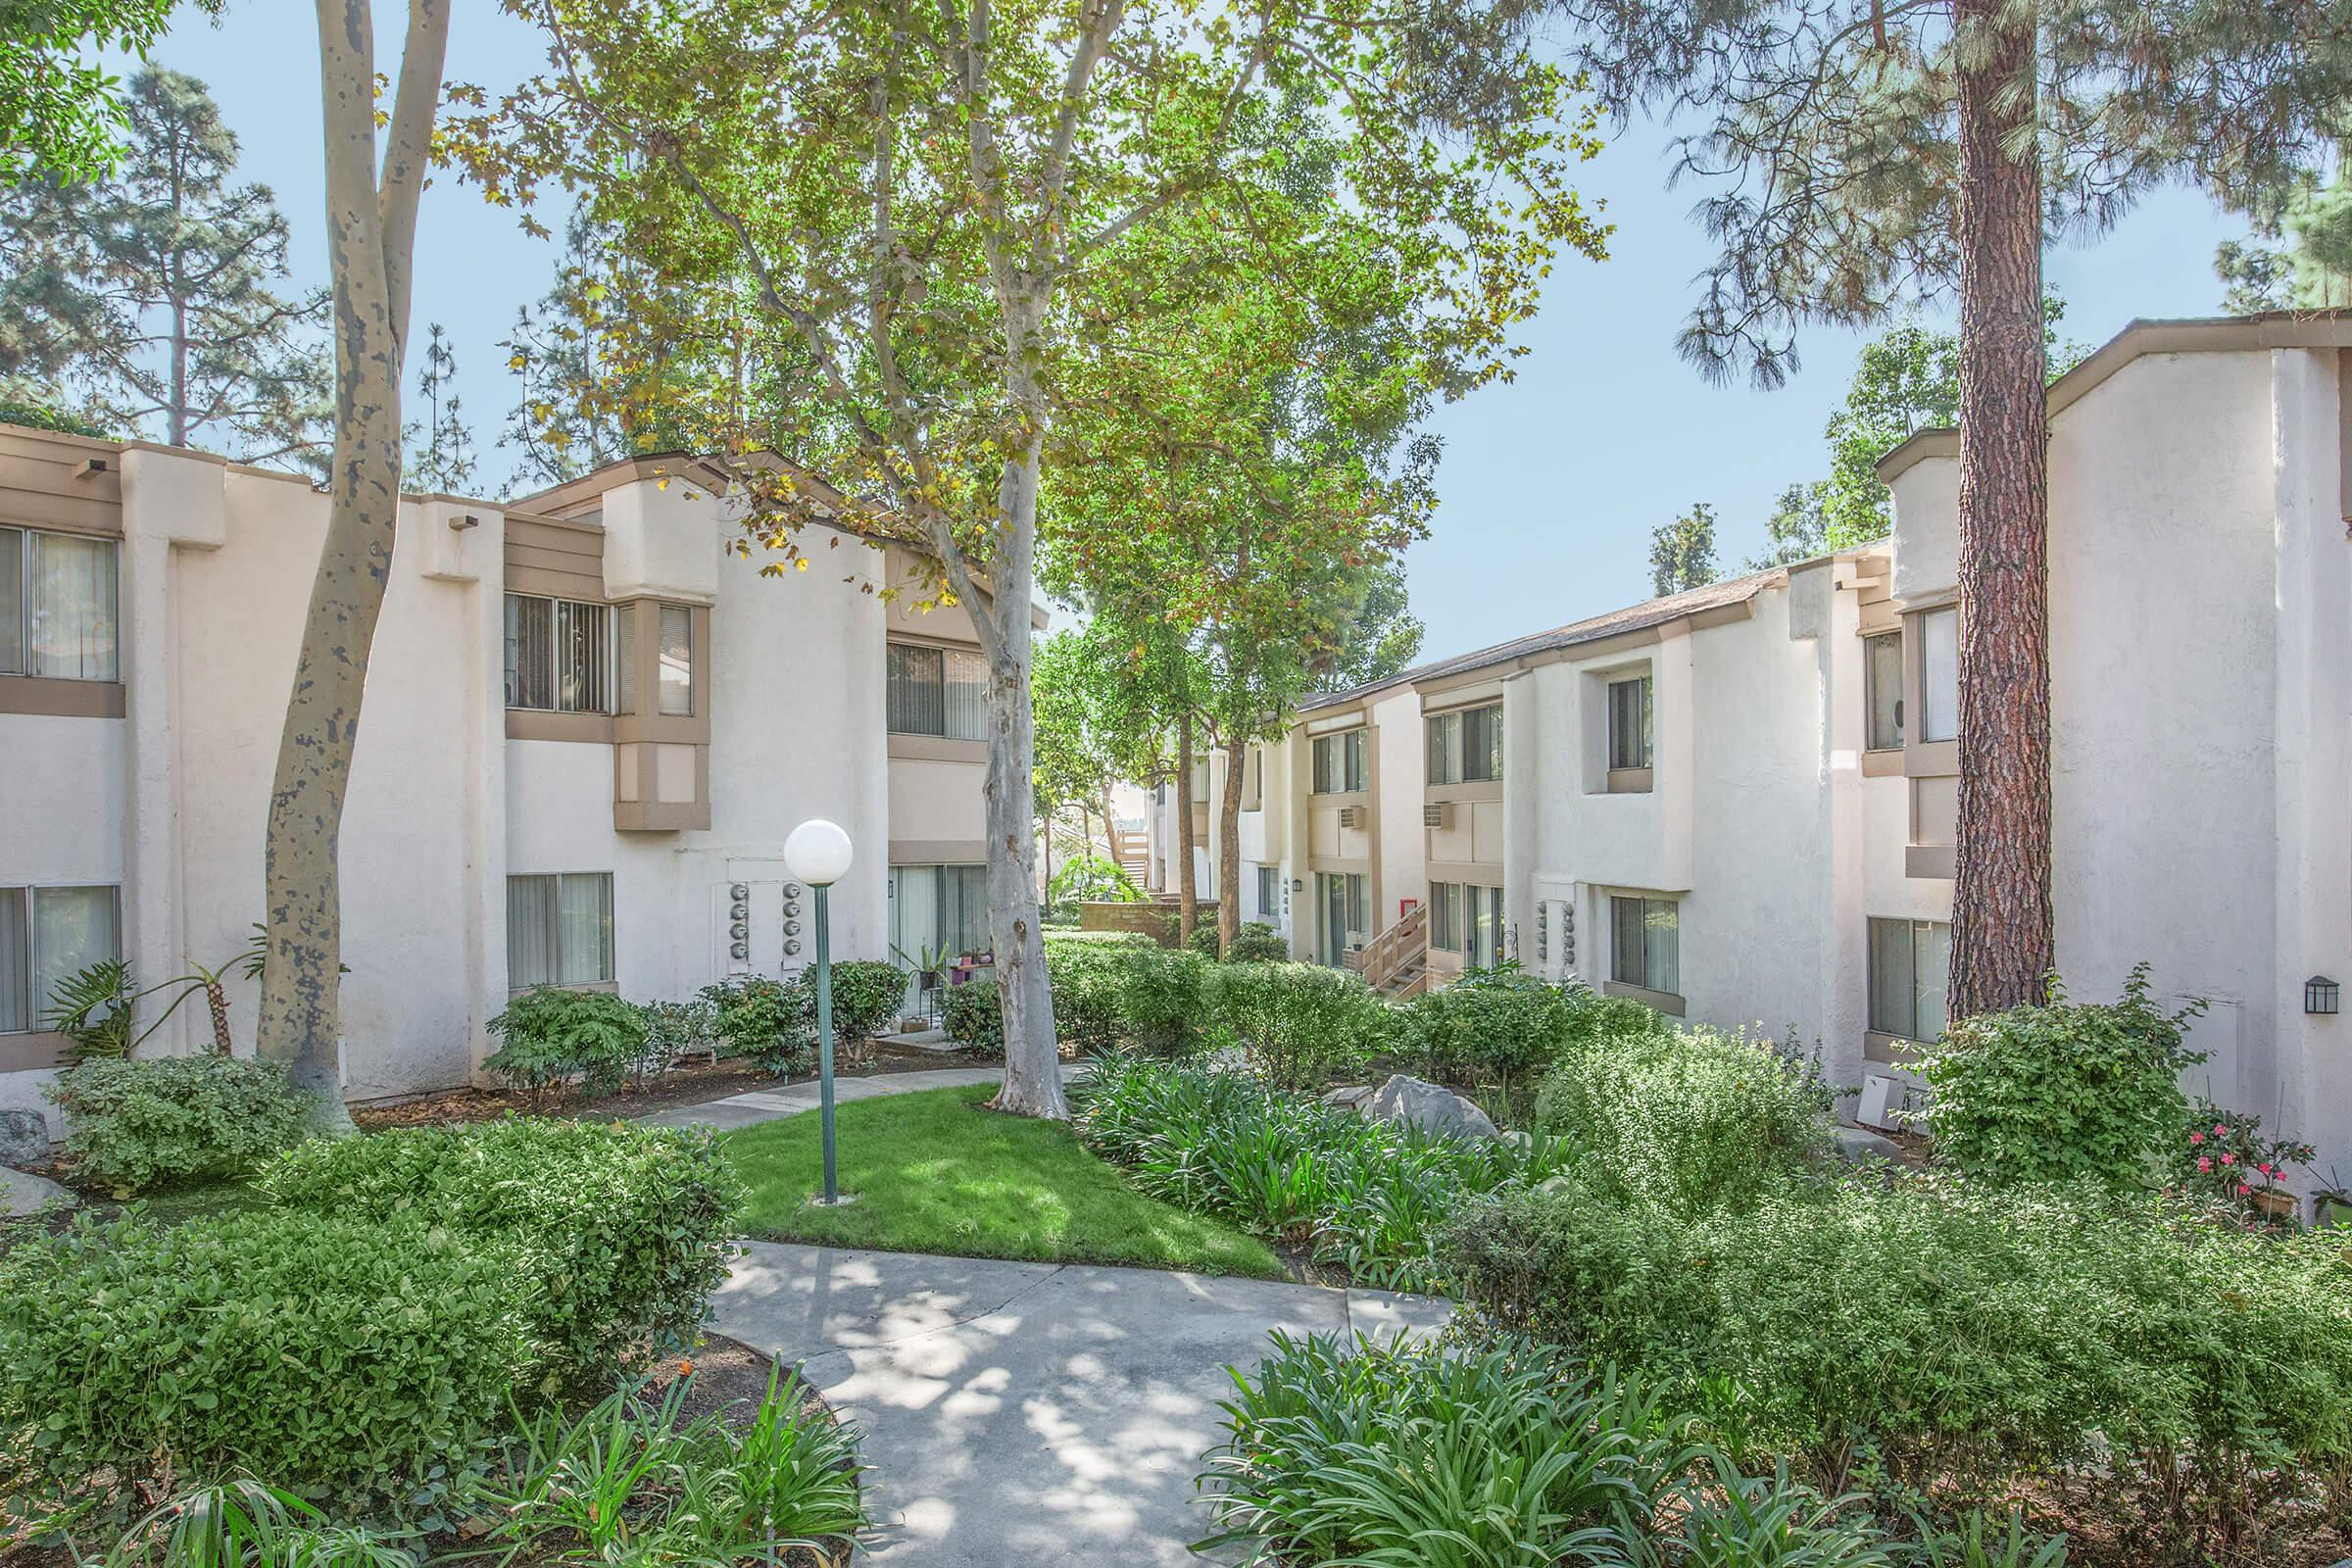 Apartments Near Claremont Country Woods Apartment Homes for Claremont McKenna College Students in Claremont, CA